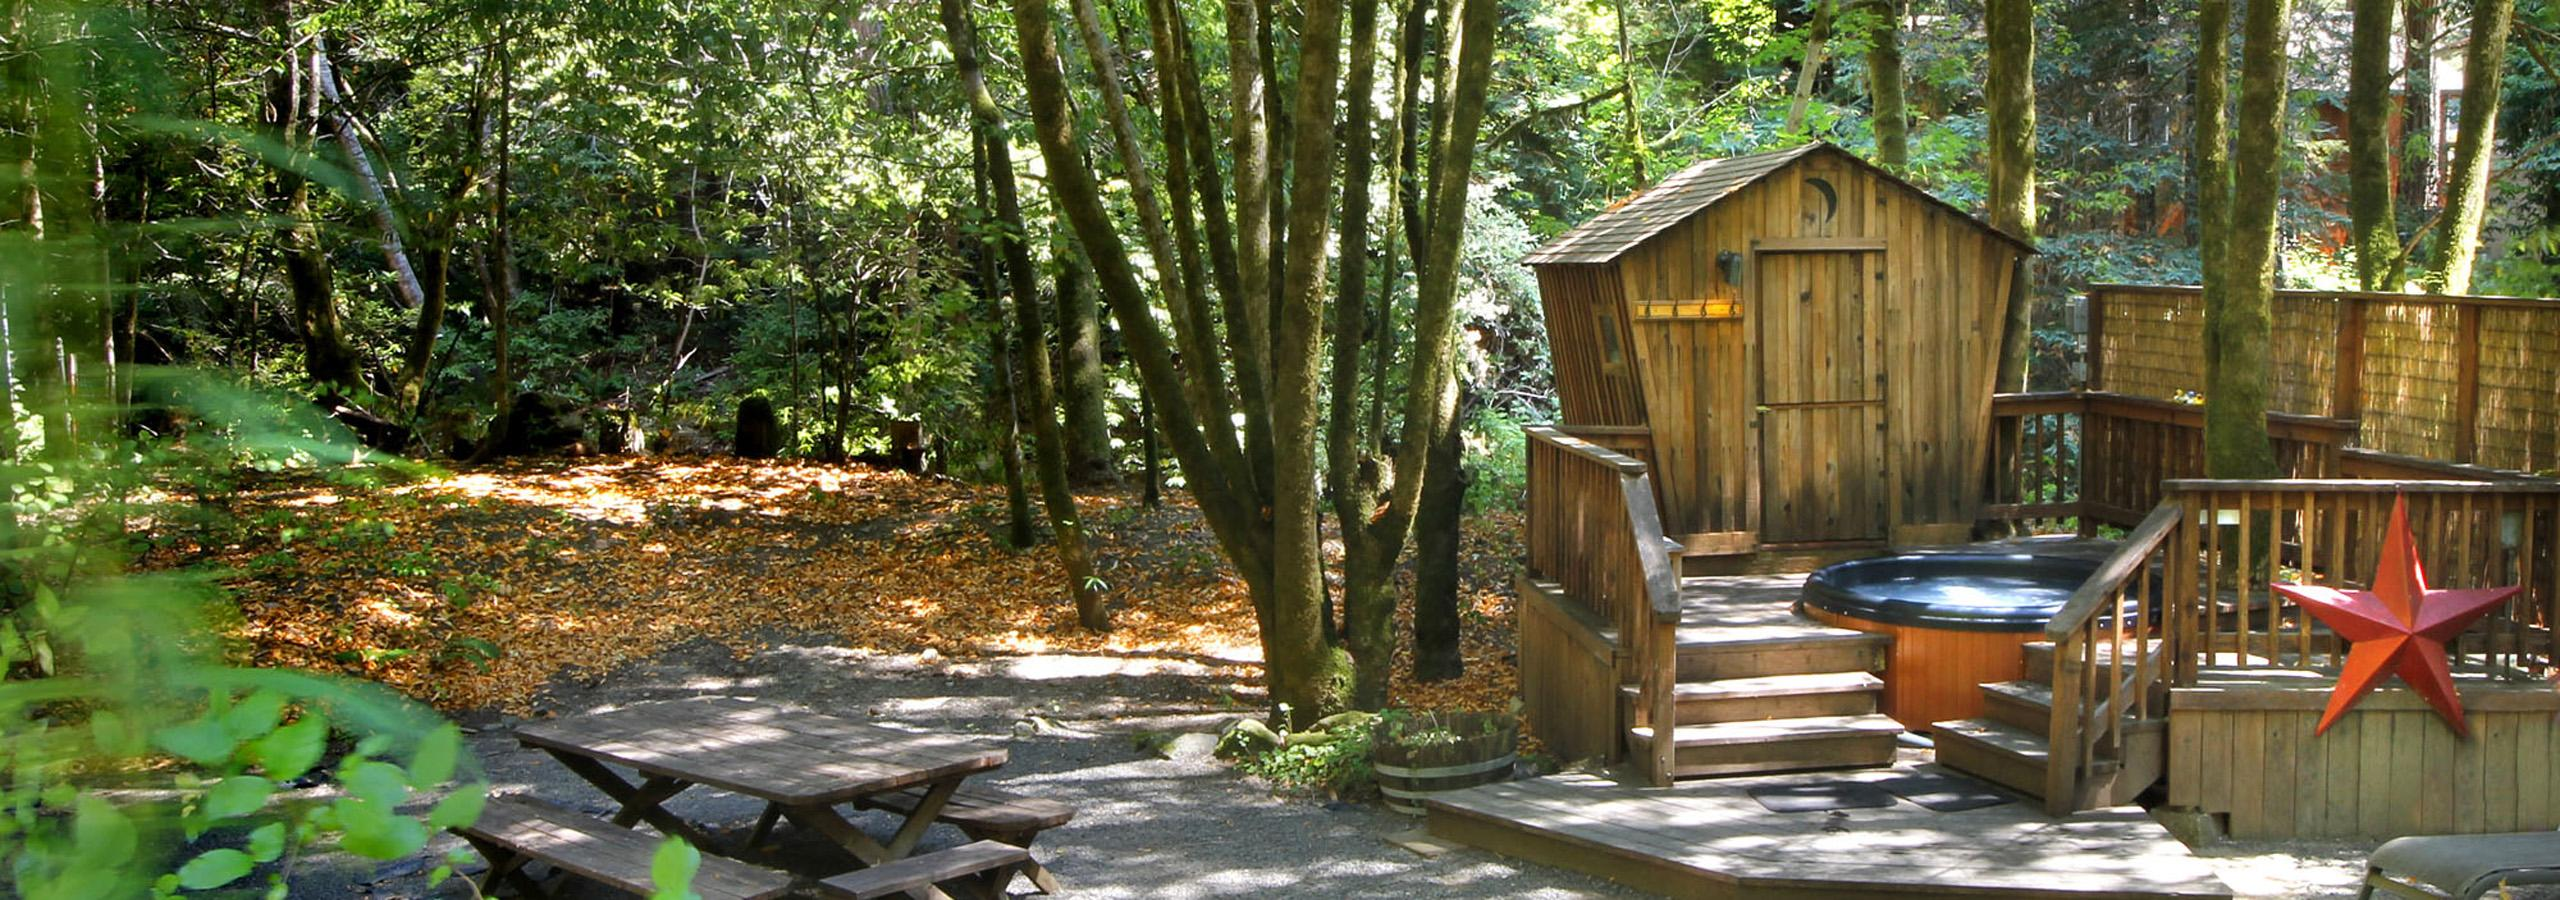 Russian River Vacation It